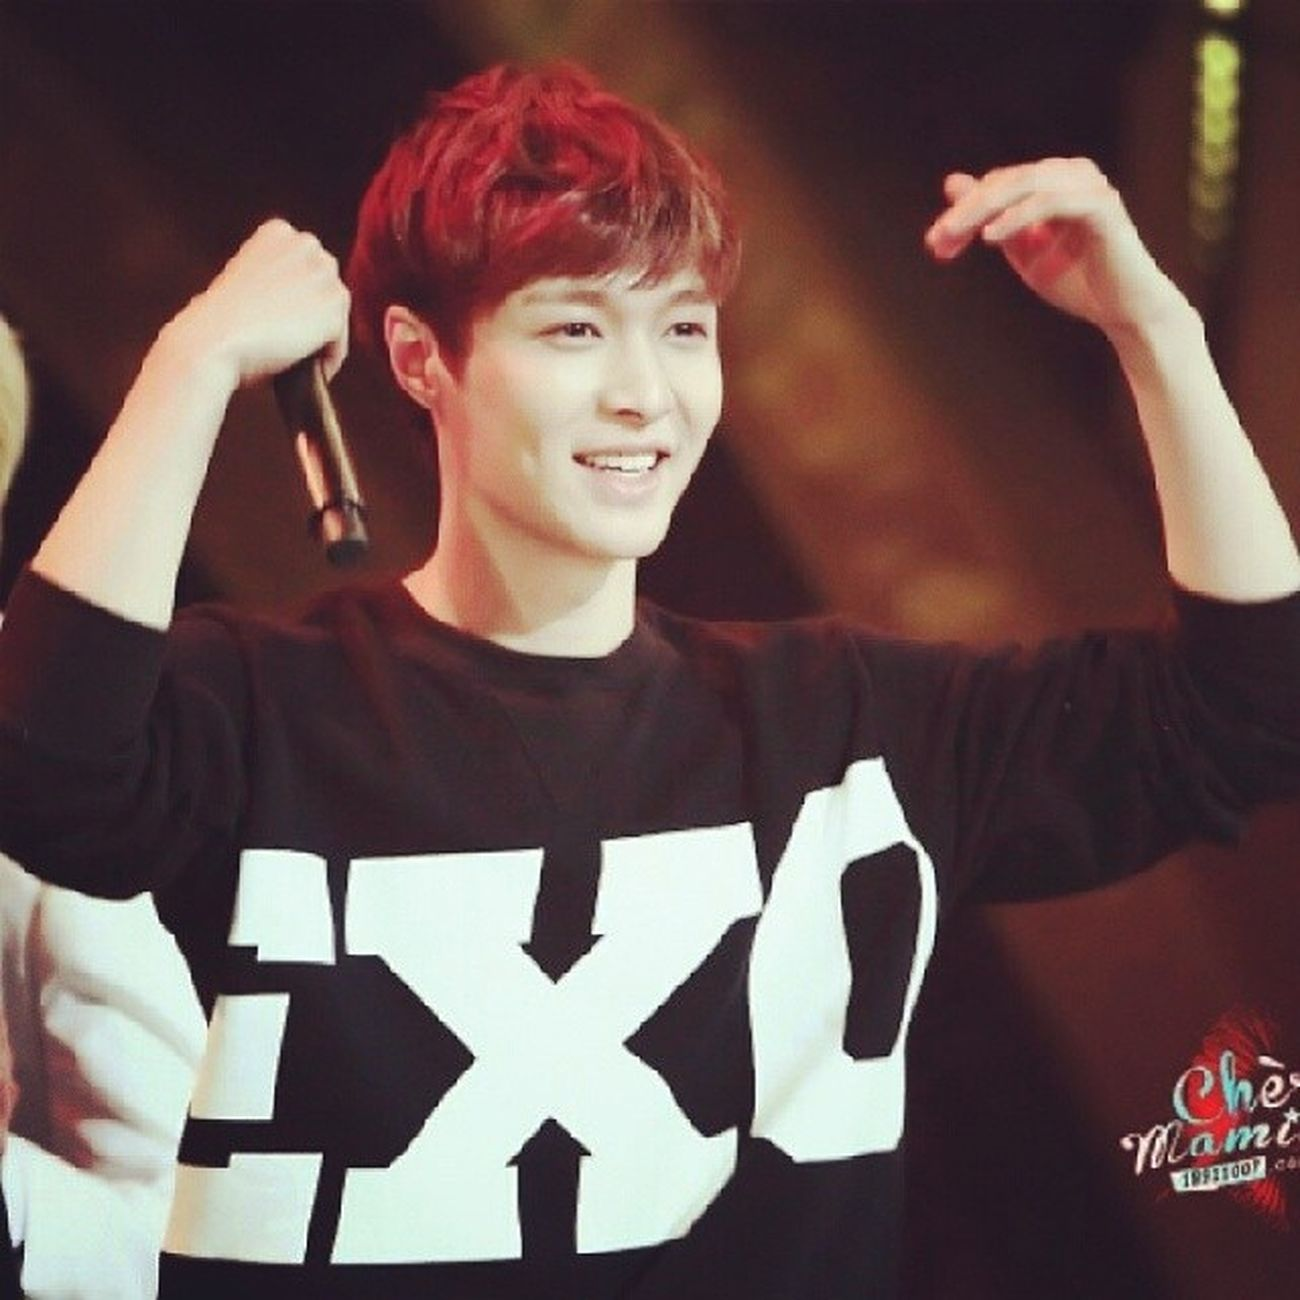 Kawaii ????????? Lolz Lay HappyLayDay Layxotic 张艺兴 exo exoeveryday exolay exofriday exoforever exoweareone exotheawesome EXOEXOEXO exotic